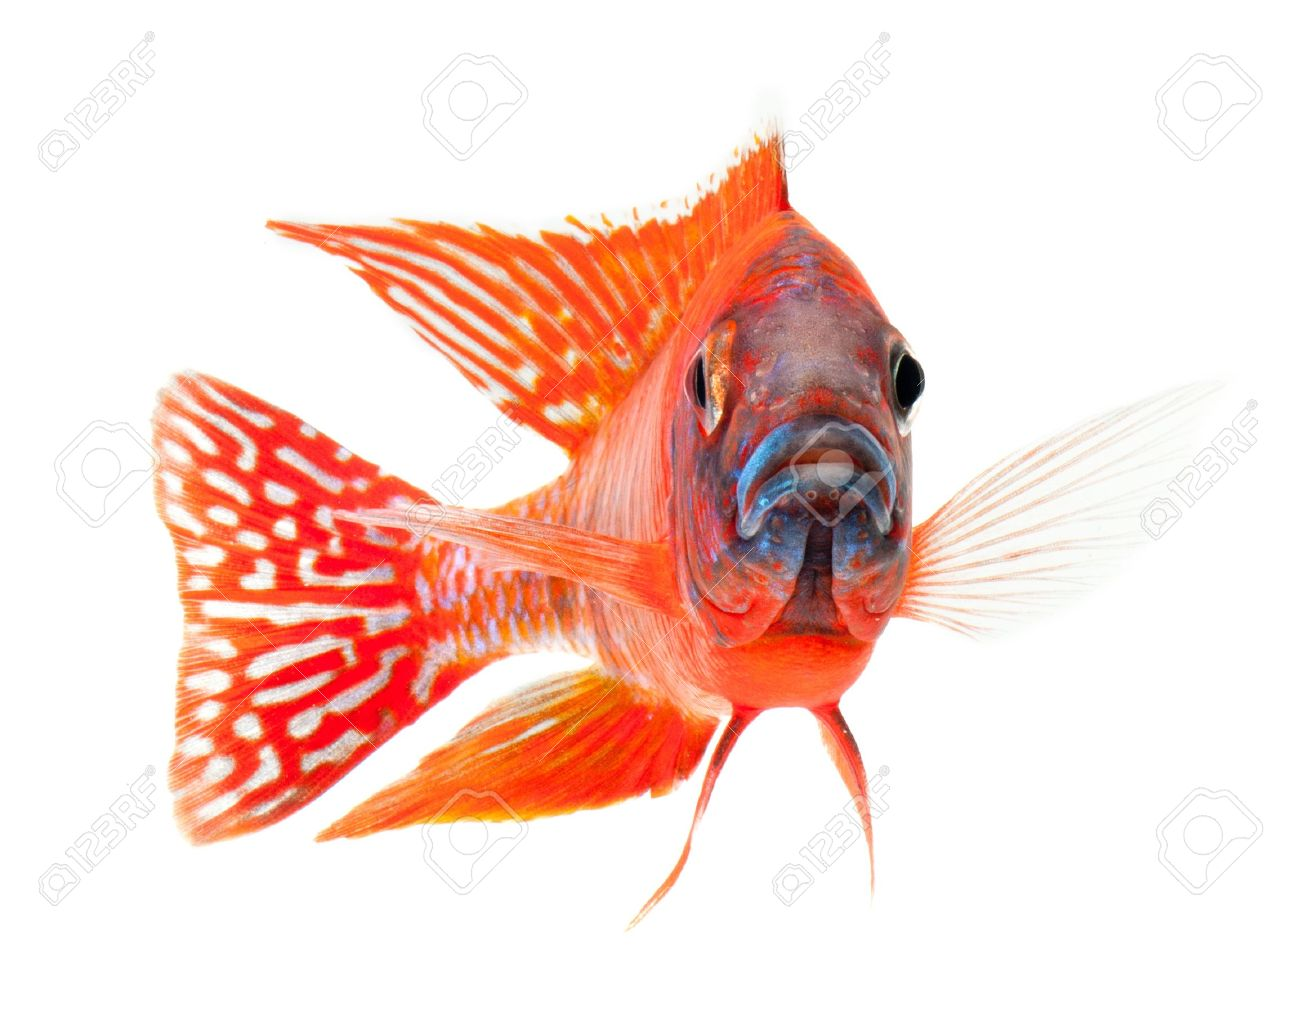 red cichlid fish, ruby red peacock fish, isolated on white background Stock Photo - 11542109